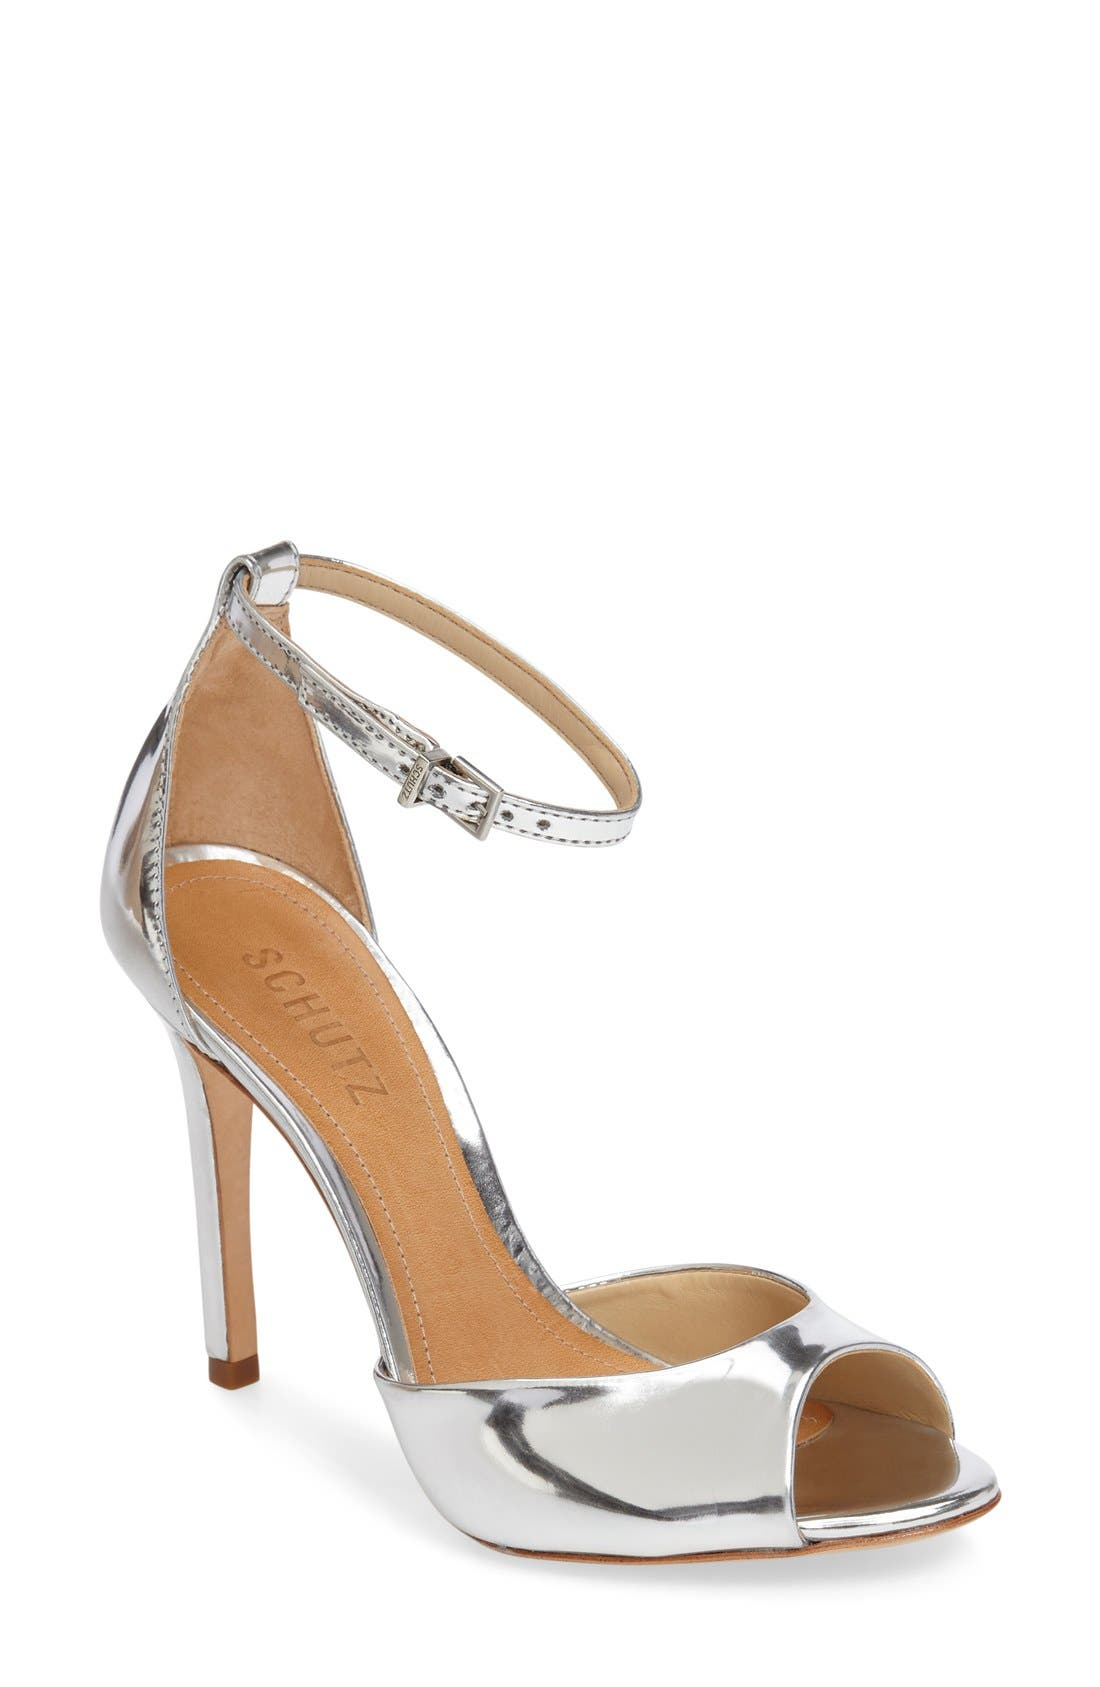 Saasha Lee Ankle Strap Sandal,                         Main,                         color, Silver Leather